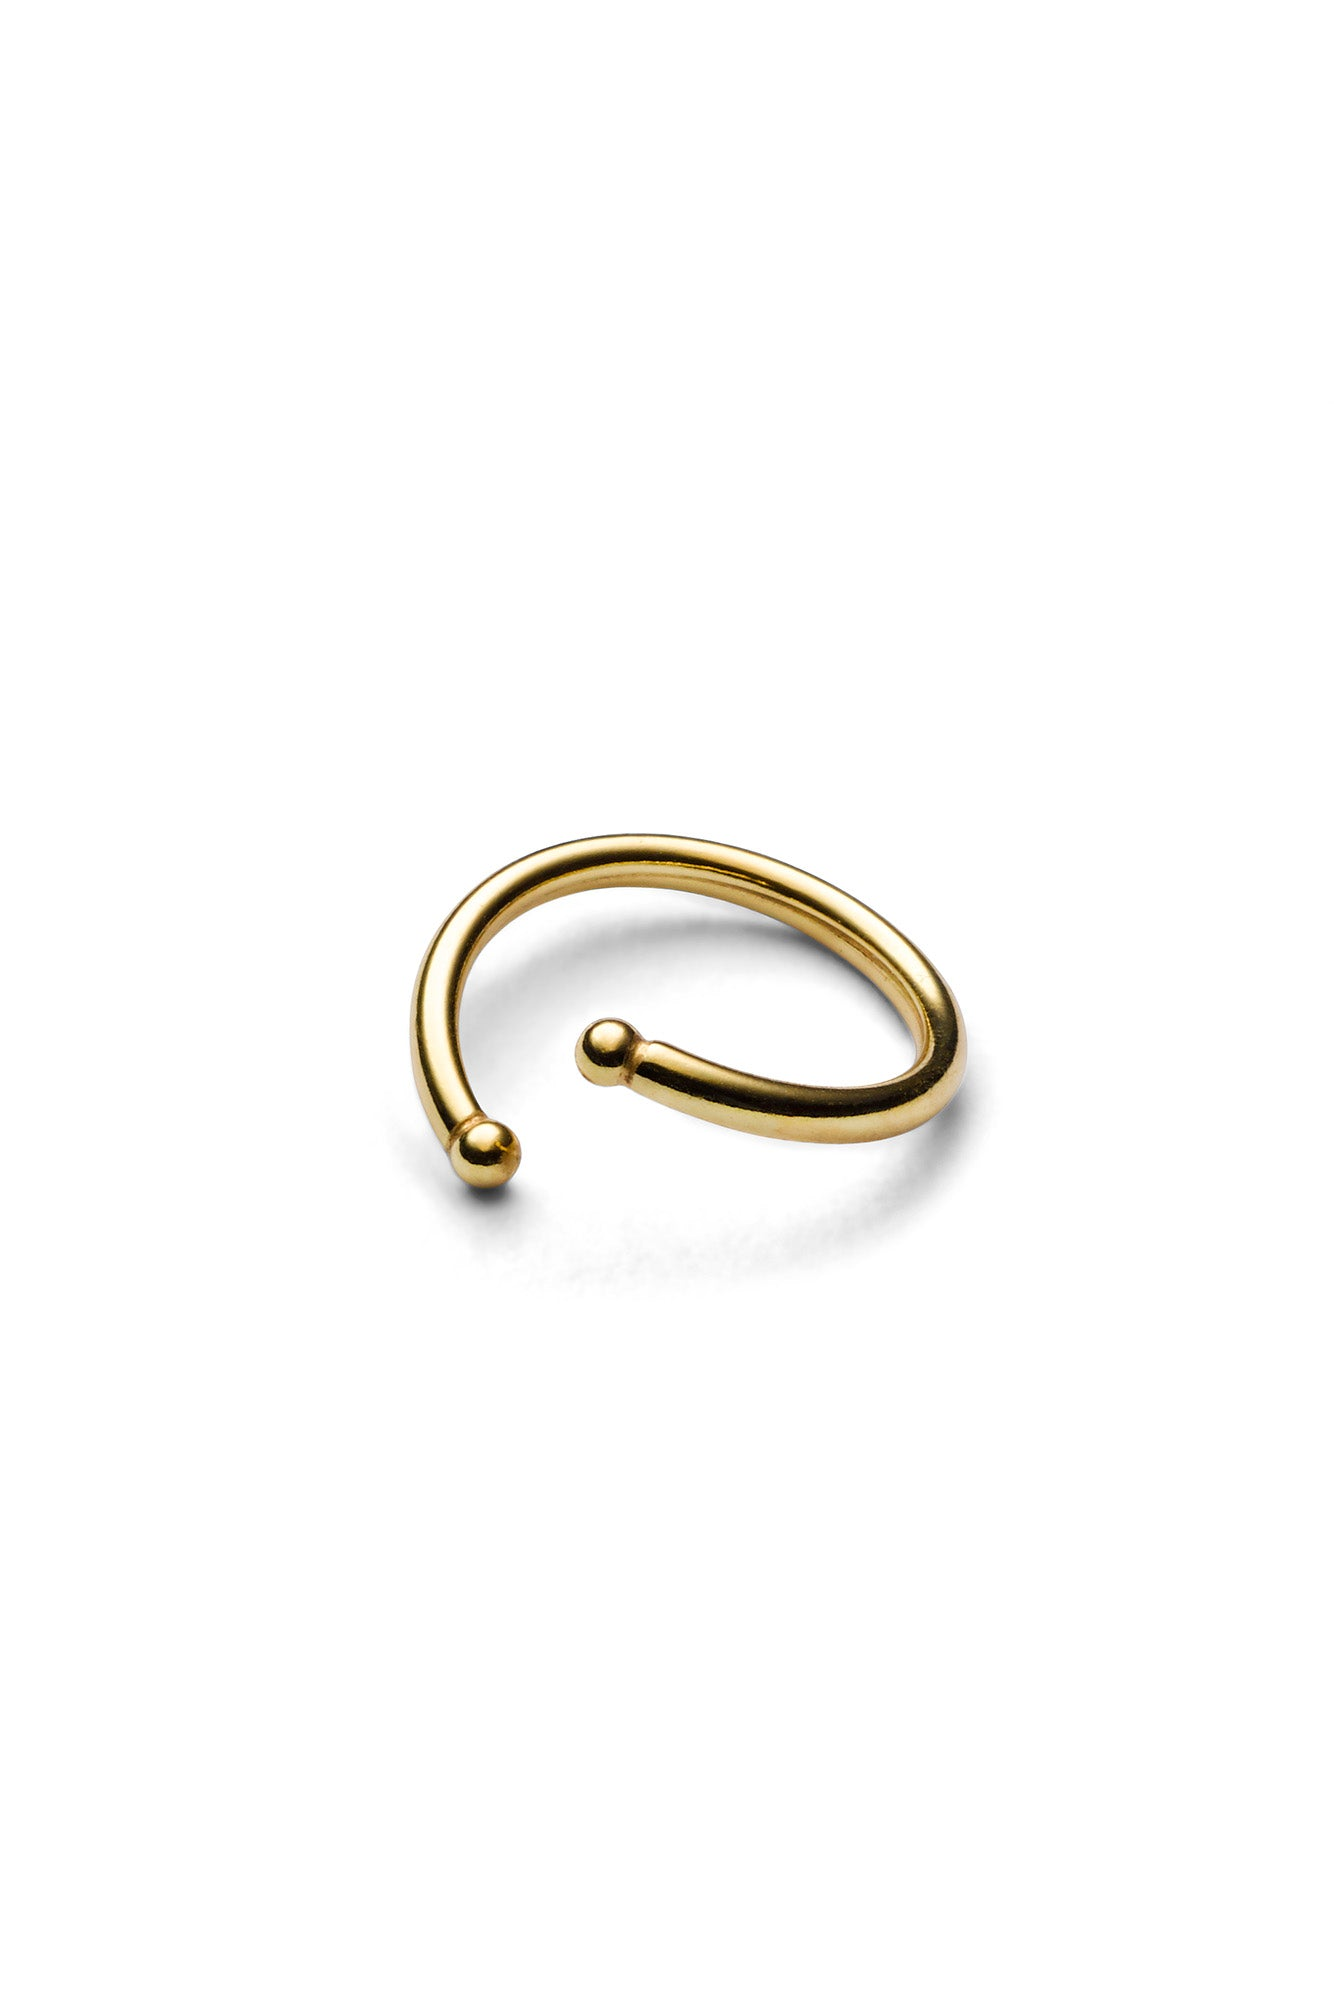 SPRING KNUCKLE RING